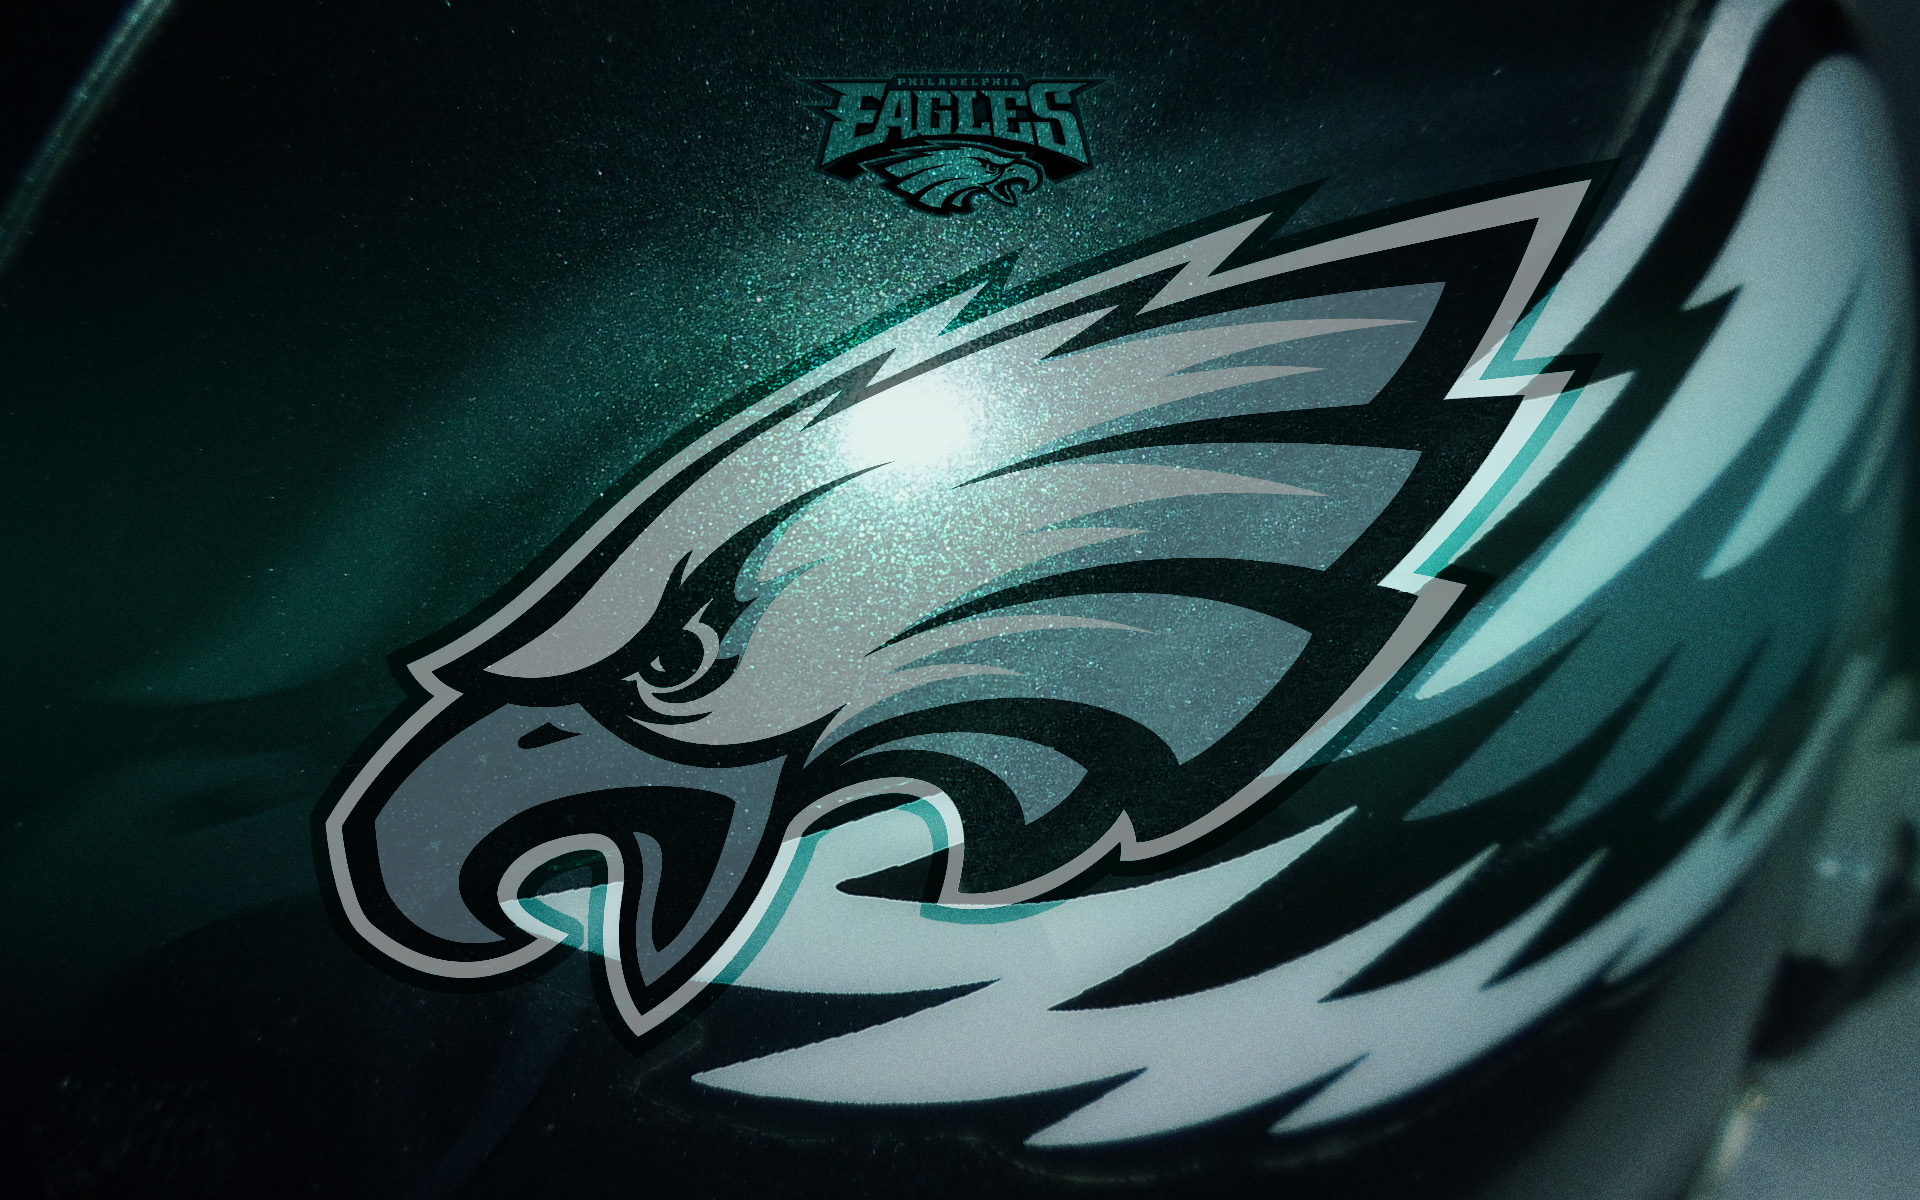 Philadelphia Eagles Wallpaper 19201200 21406 HD Wallpaper Res 1920x1200